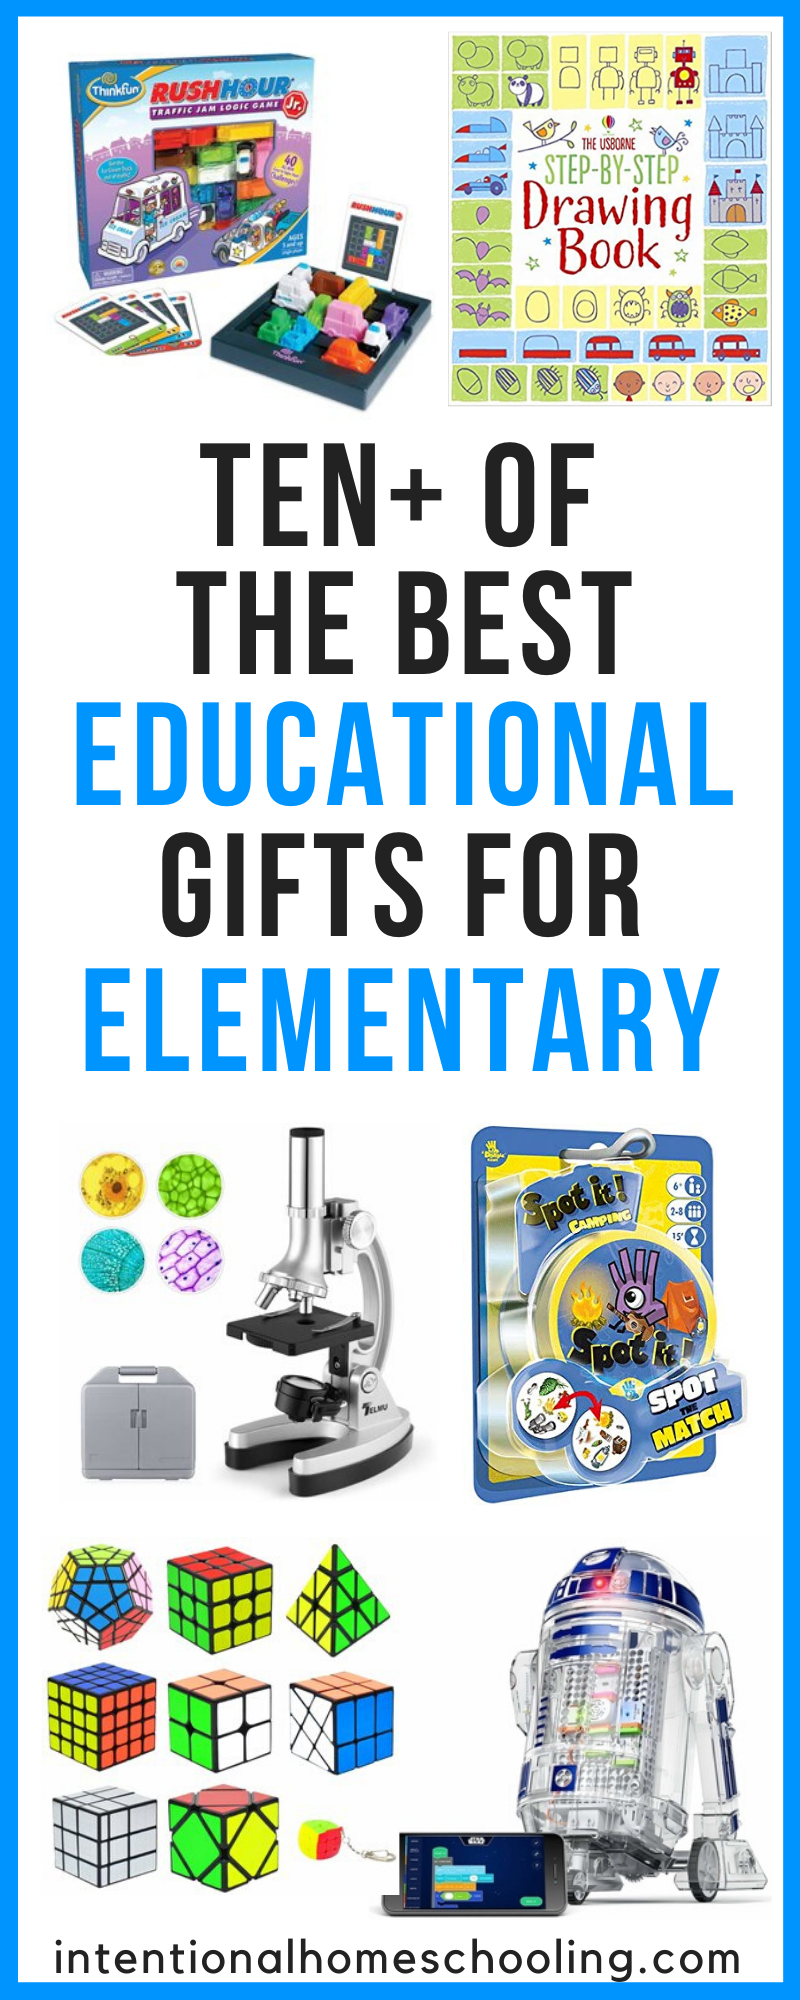 The Best Educational Gifts and Toys for Elementary ages 5-8